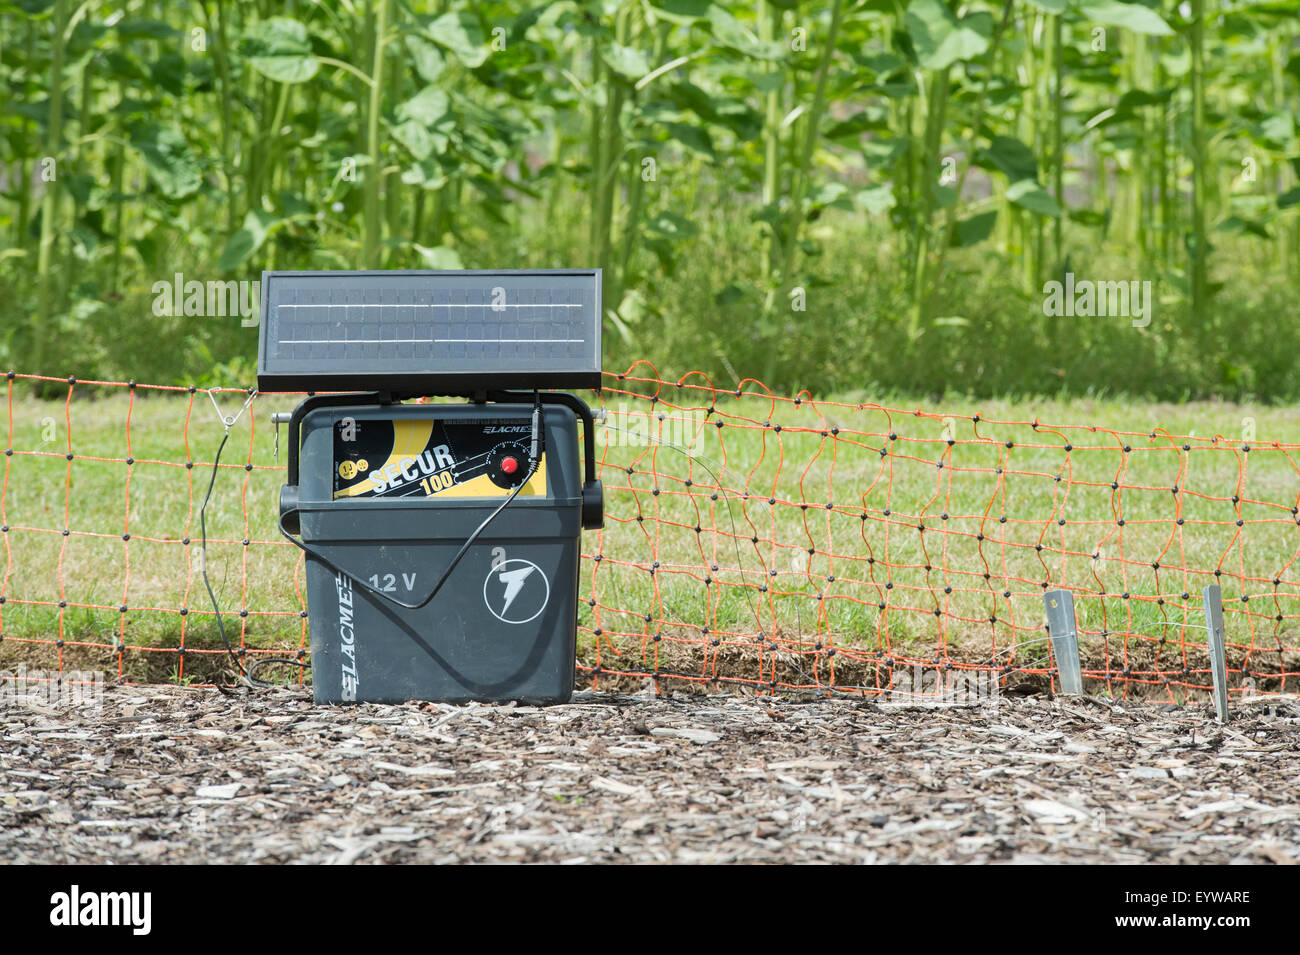 electric fence for garden. Portable Solar Power Battery Unit And Electric Fence Around A Crop Of Maize In The Vegetable Garden At RHS Wisley Gardens. UK For